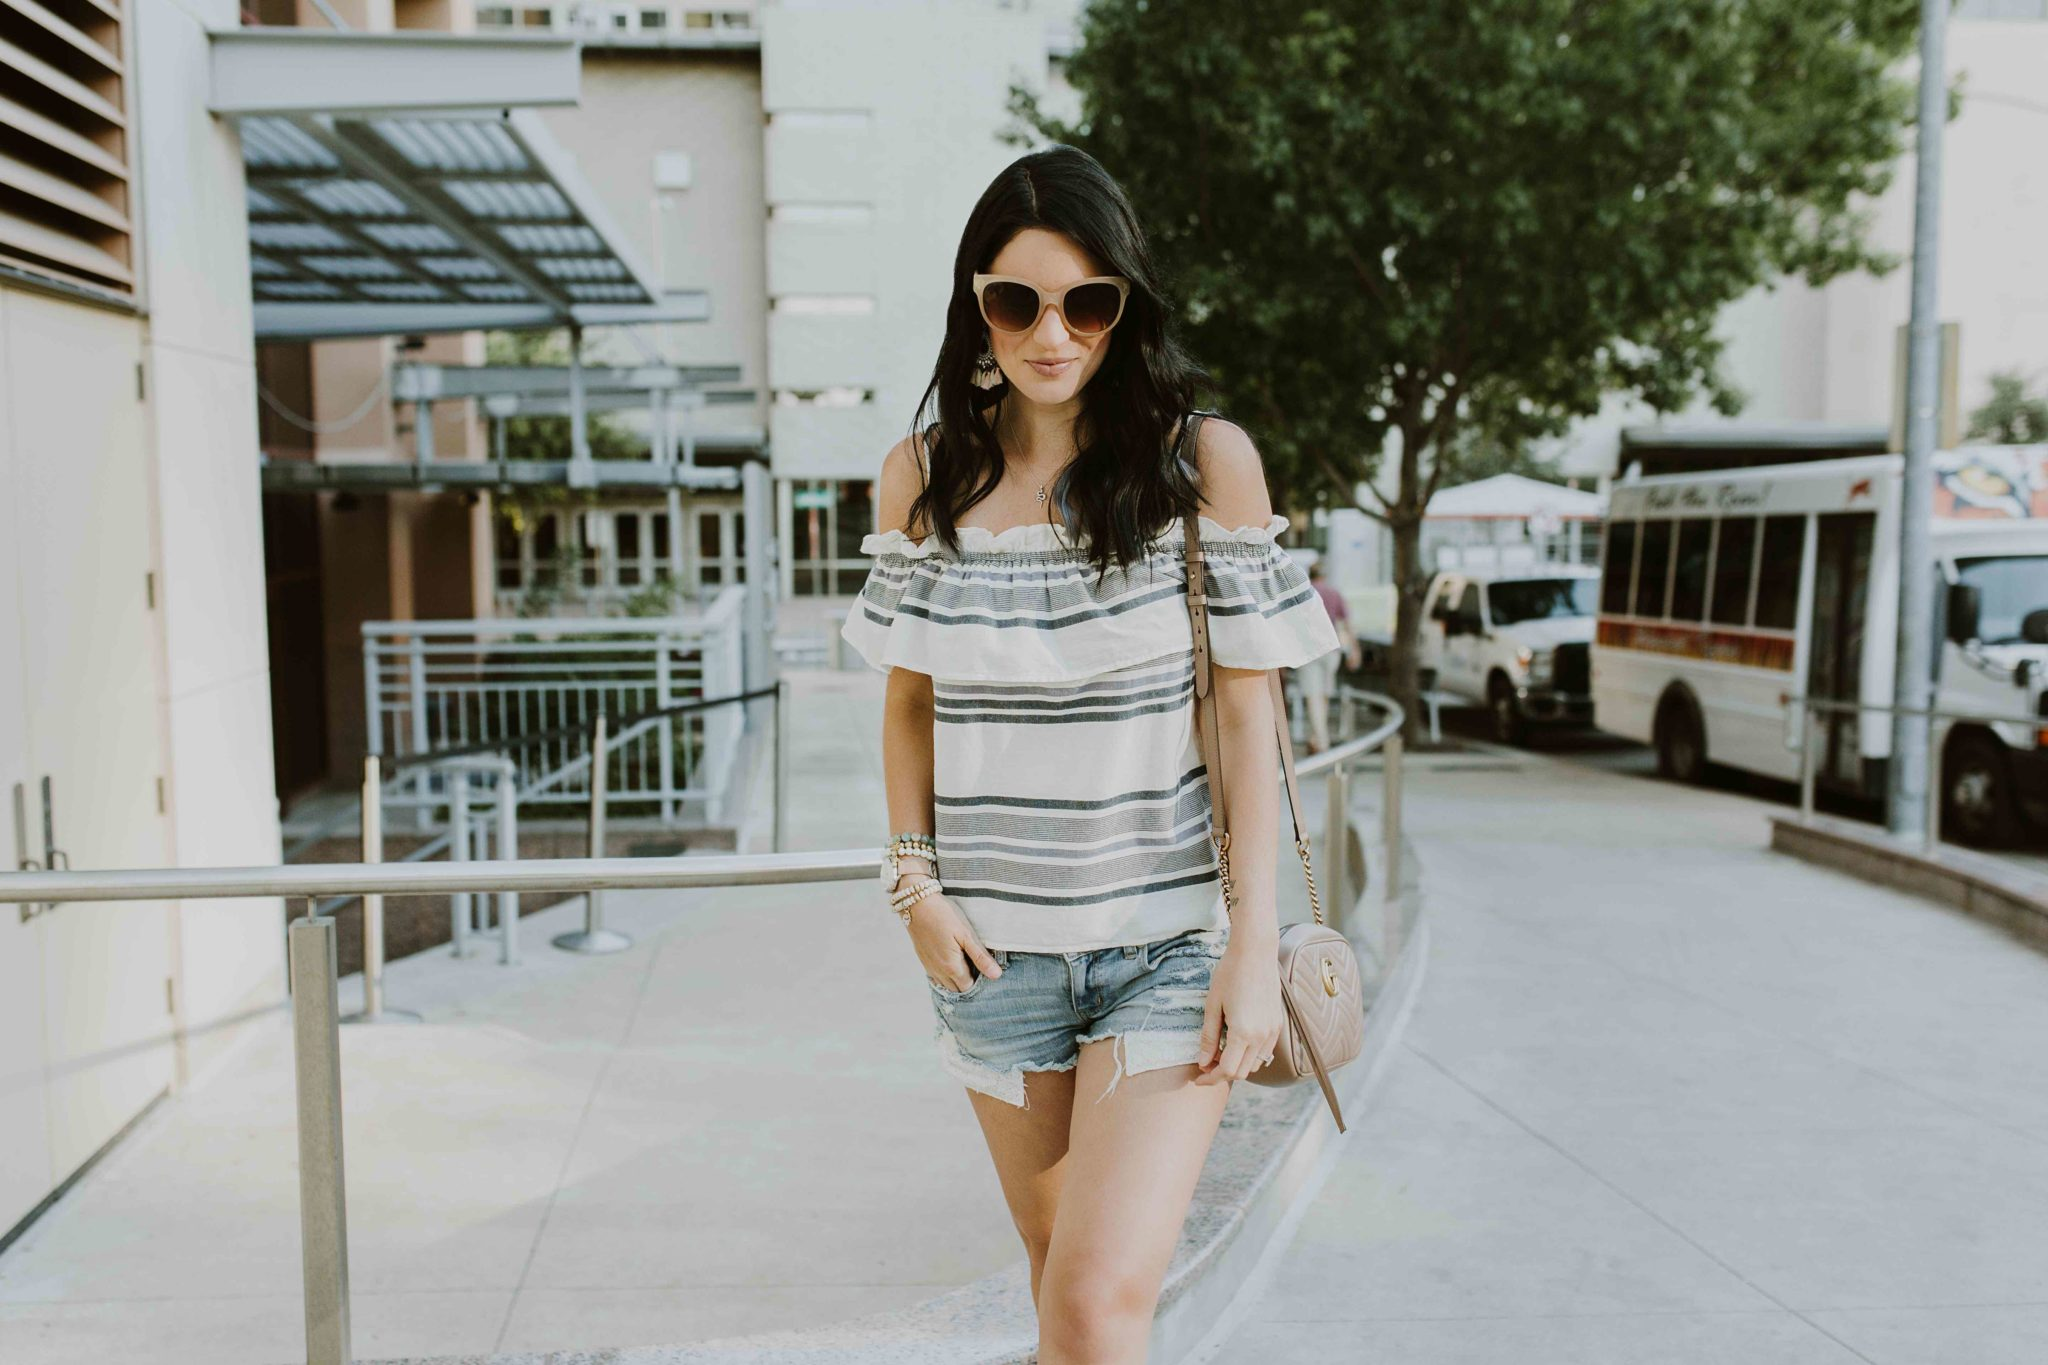 DTKAustin shares one of her go-to, affordable striped off-the-shoulder tops from Splendid. Click for more information or details. | how to style an off-the-shoulder top | how to wear an off-the-shoulder top | summer fashion tips | summer outfit ideas | summer style tips | what to wear for summer | warm weather fashion | fashion for summer | style tips for summer | outfit ideas for summer || Dressed to Kill